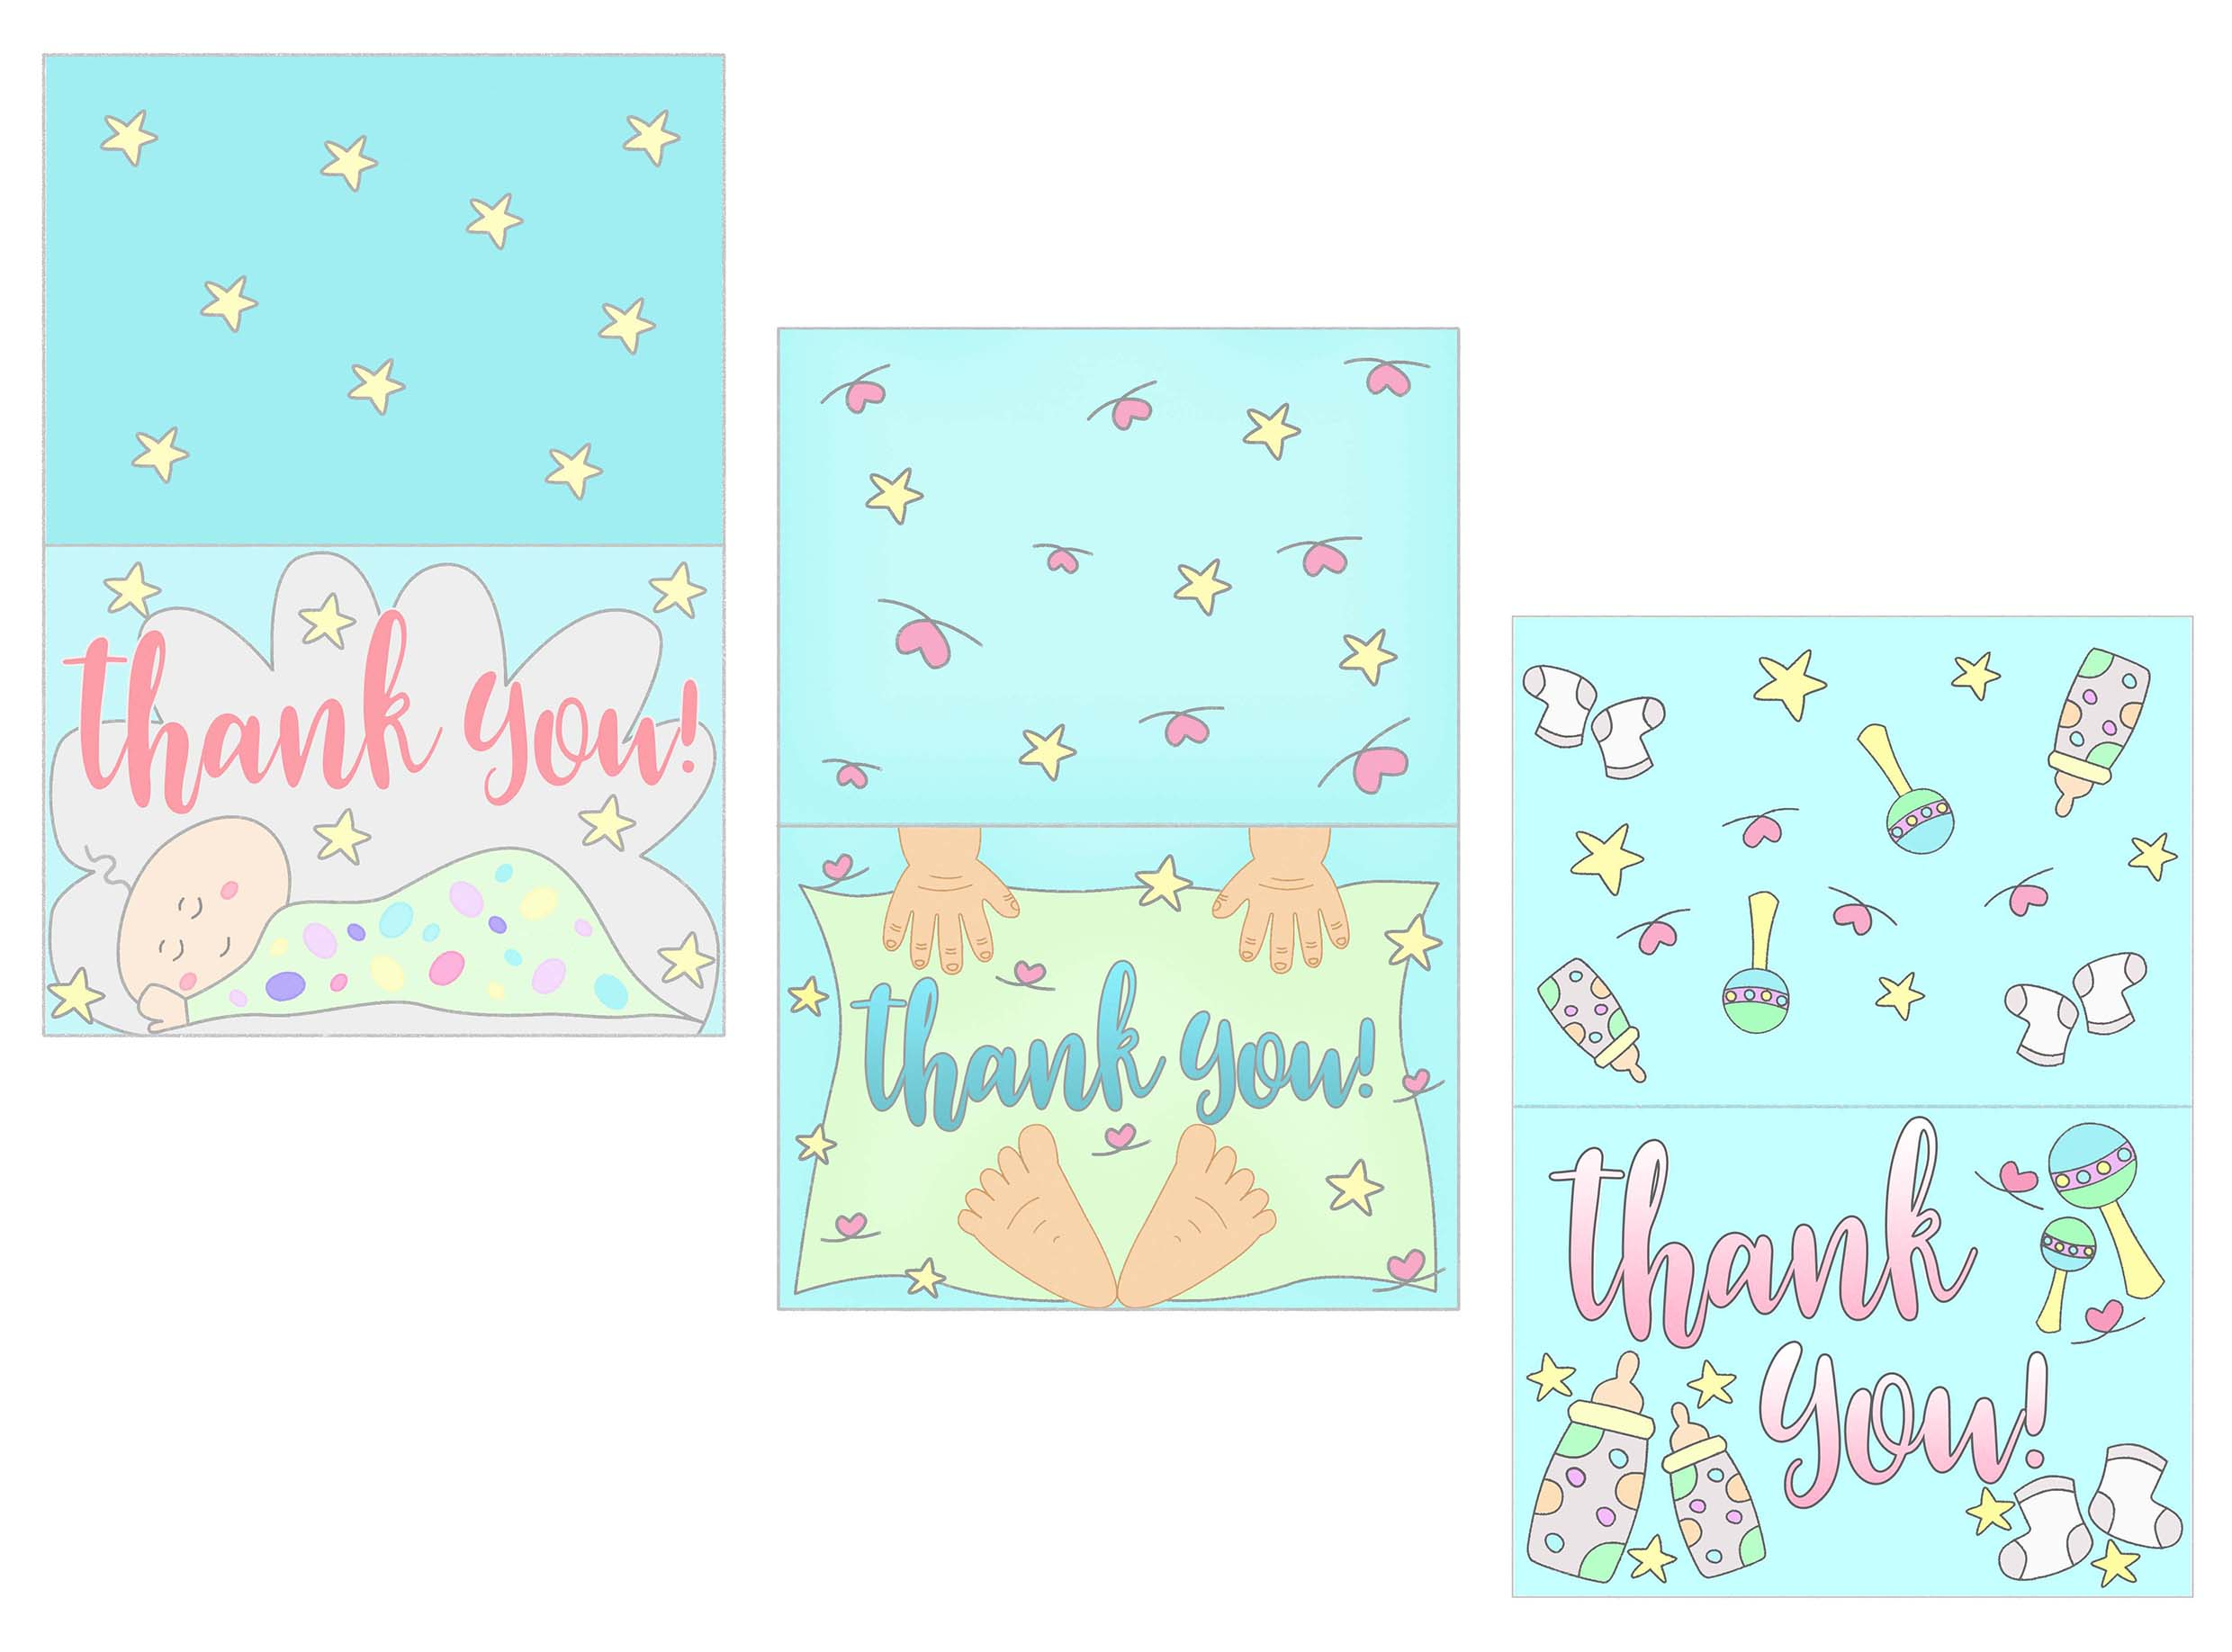 Free Printable Baby Gift Thank You Cards : Baby shower thank you cards free printable daydream into